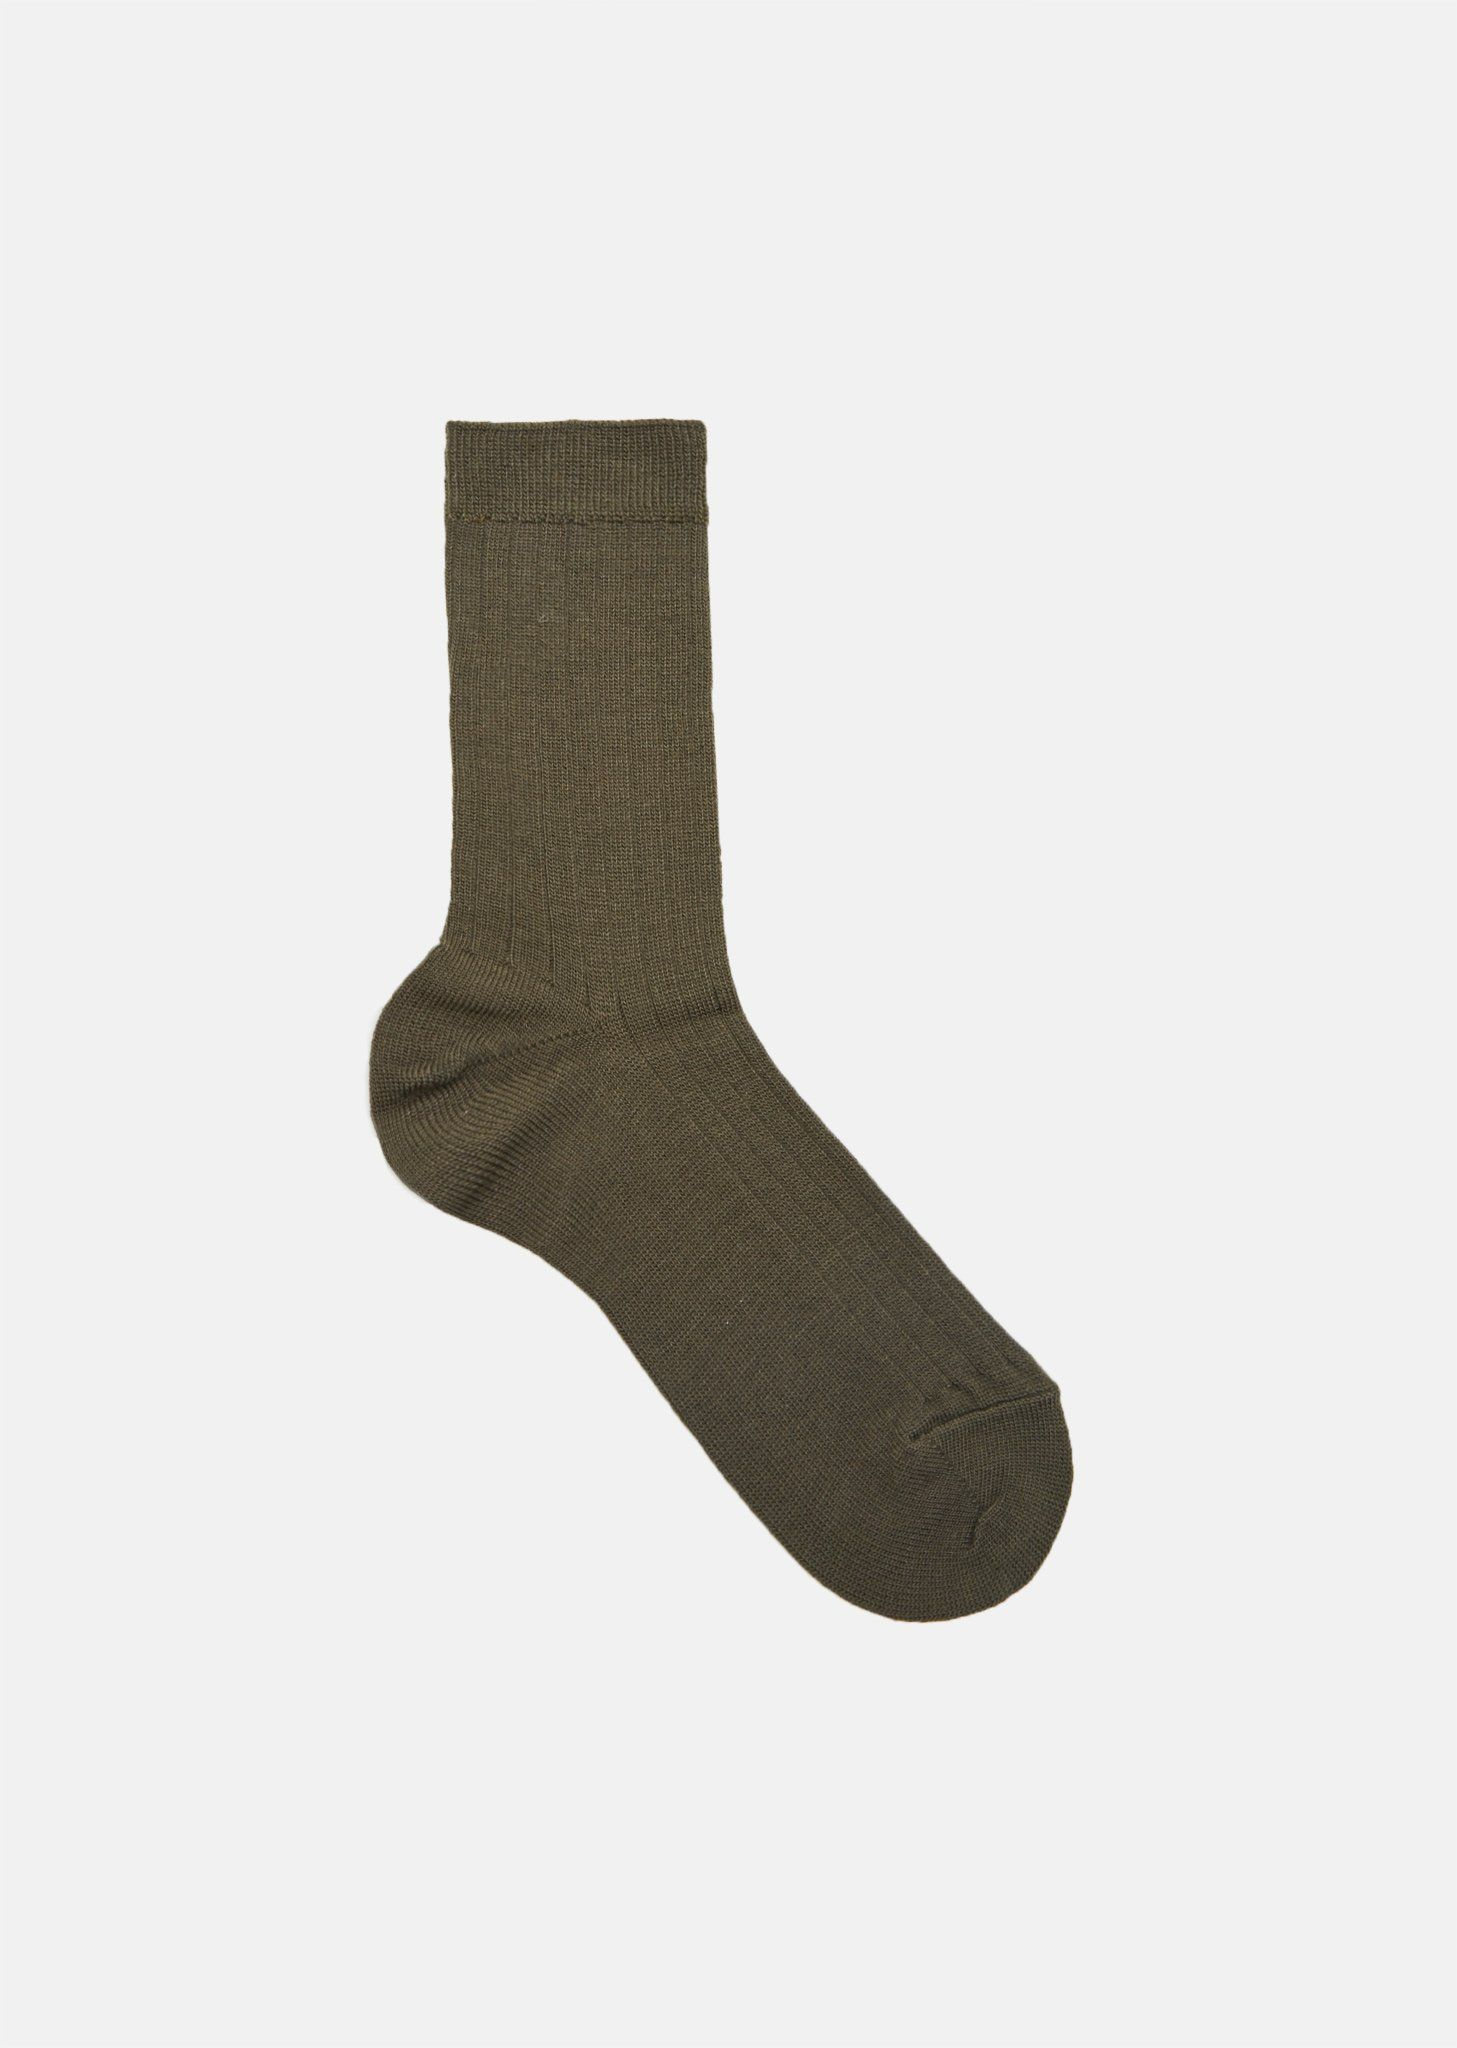 Ribbed Socks - One Size / Moss Green